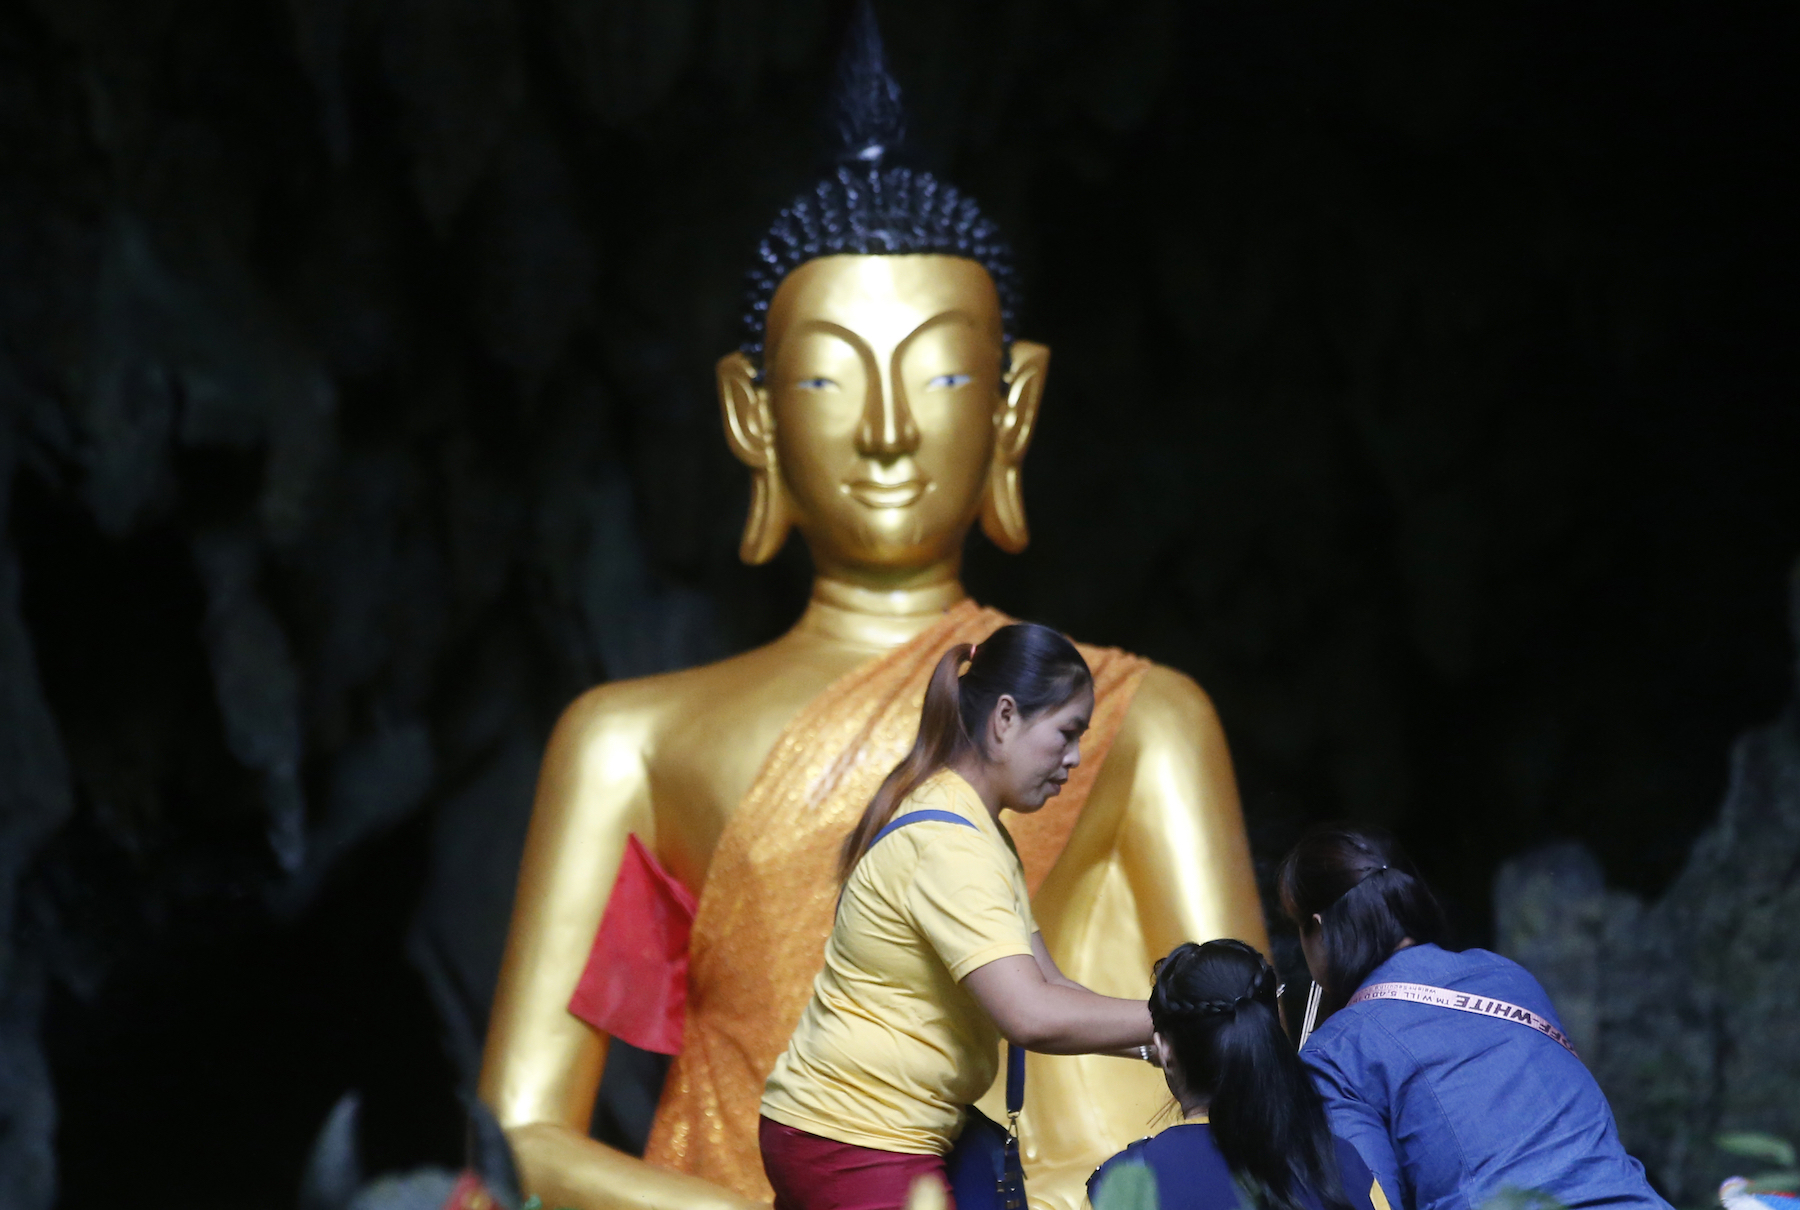 "<div class=""meta image-caption""><div class=""origin-logo origin-image ap""><span>AP</span></div><span class=""caption-text"">Family members pray in front of a Buddhist statue near a cave where 12 boys and their soccer coach have been trapped since June 23, in Mae Sai, Chiang Rai province. (AP Photo/Sakchai Lalit)</span></div>"